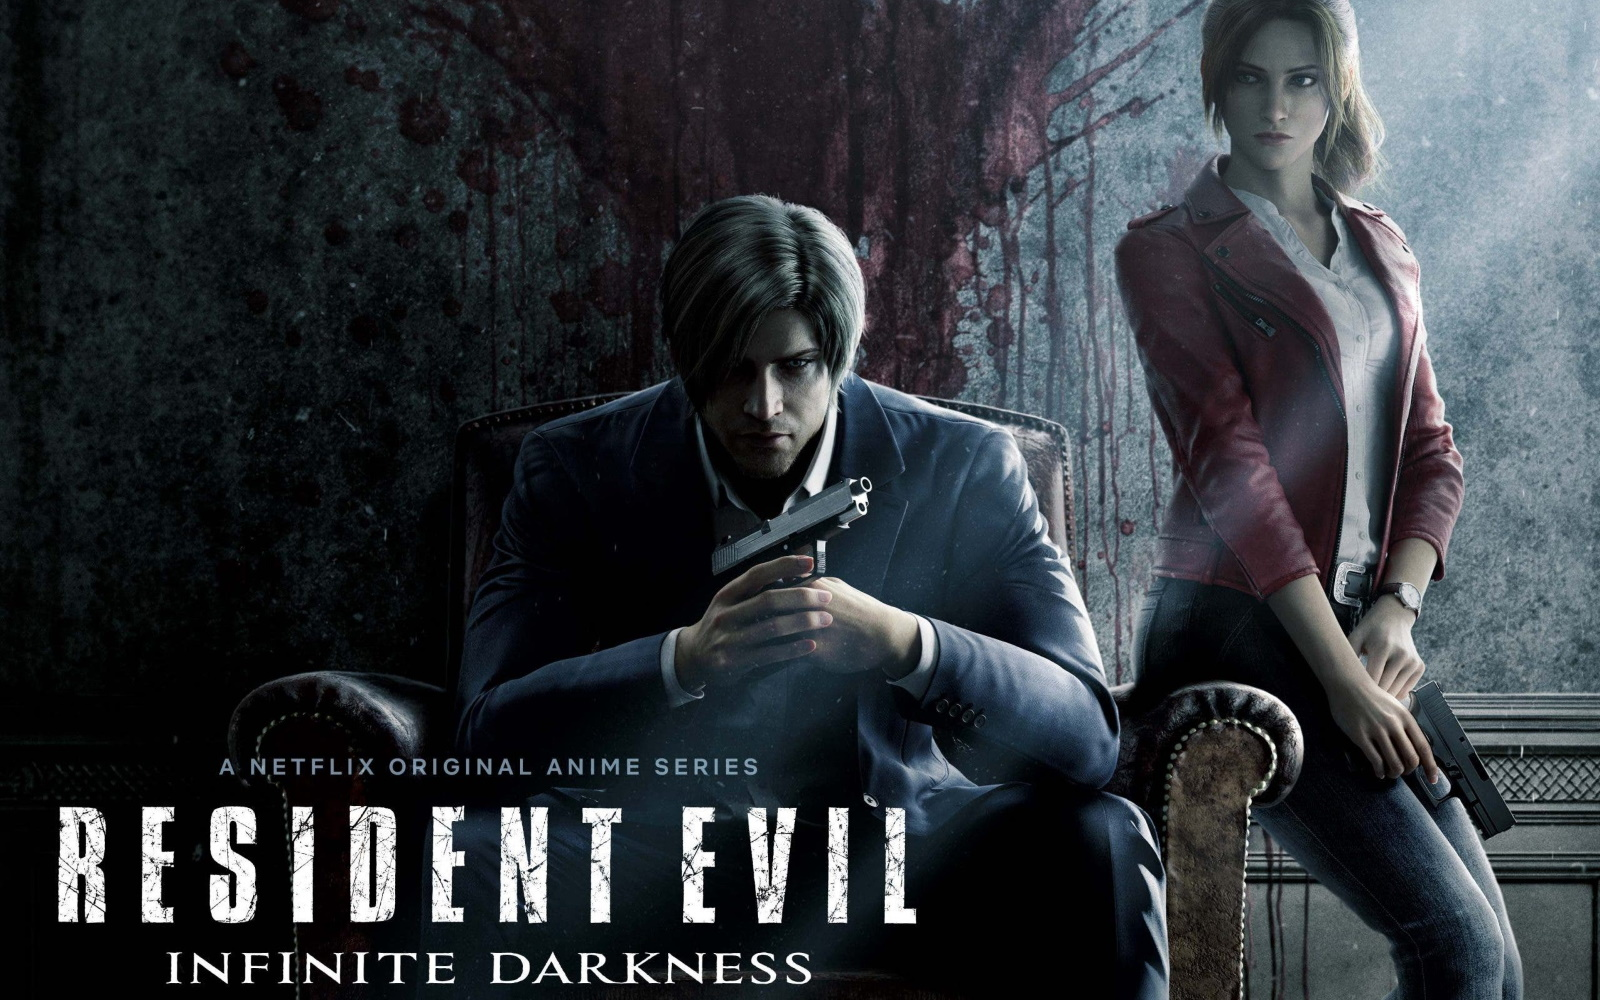 Capcom Announce Resident Evil: Infinite Darkness, A CGI Series Coming To Netflix